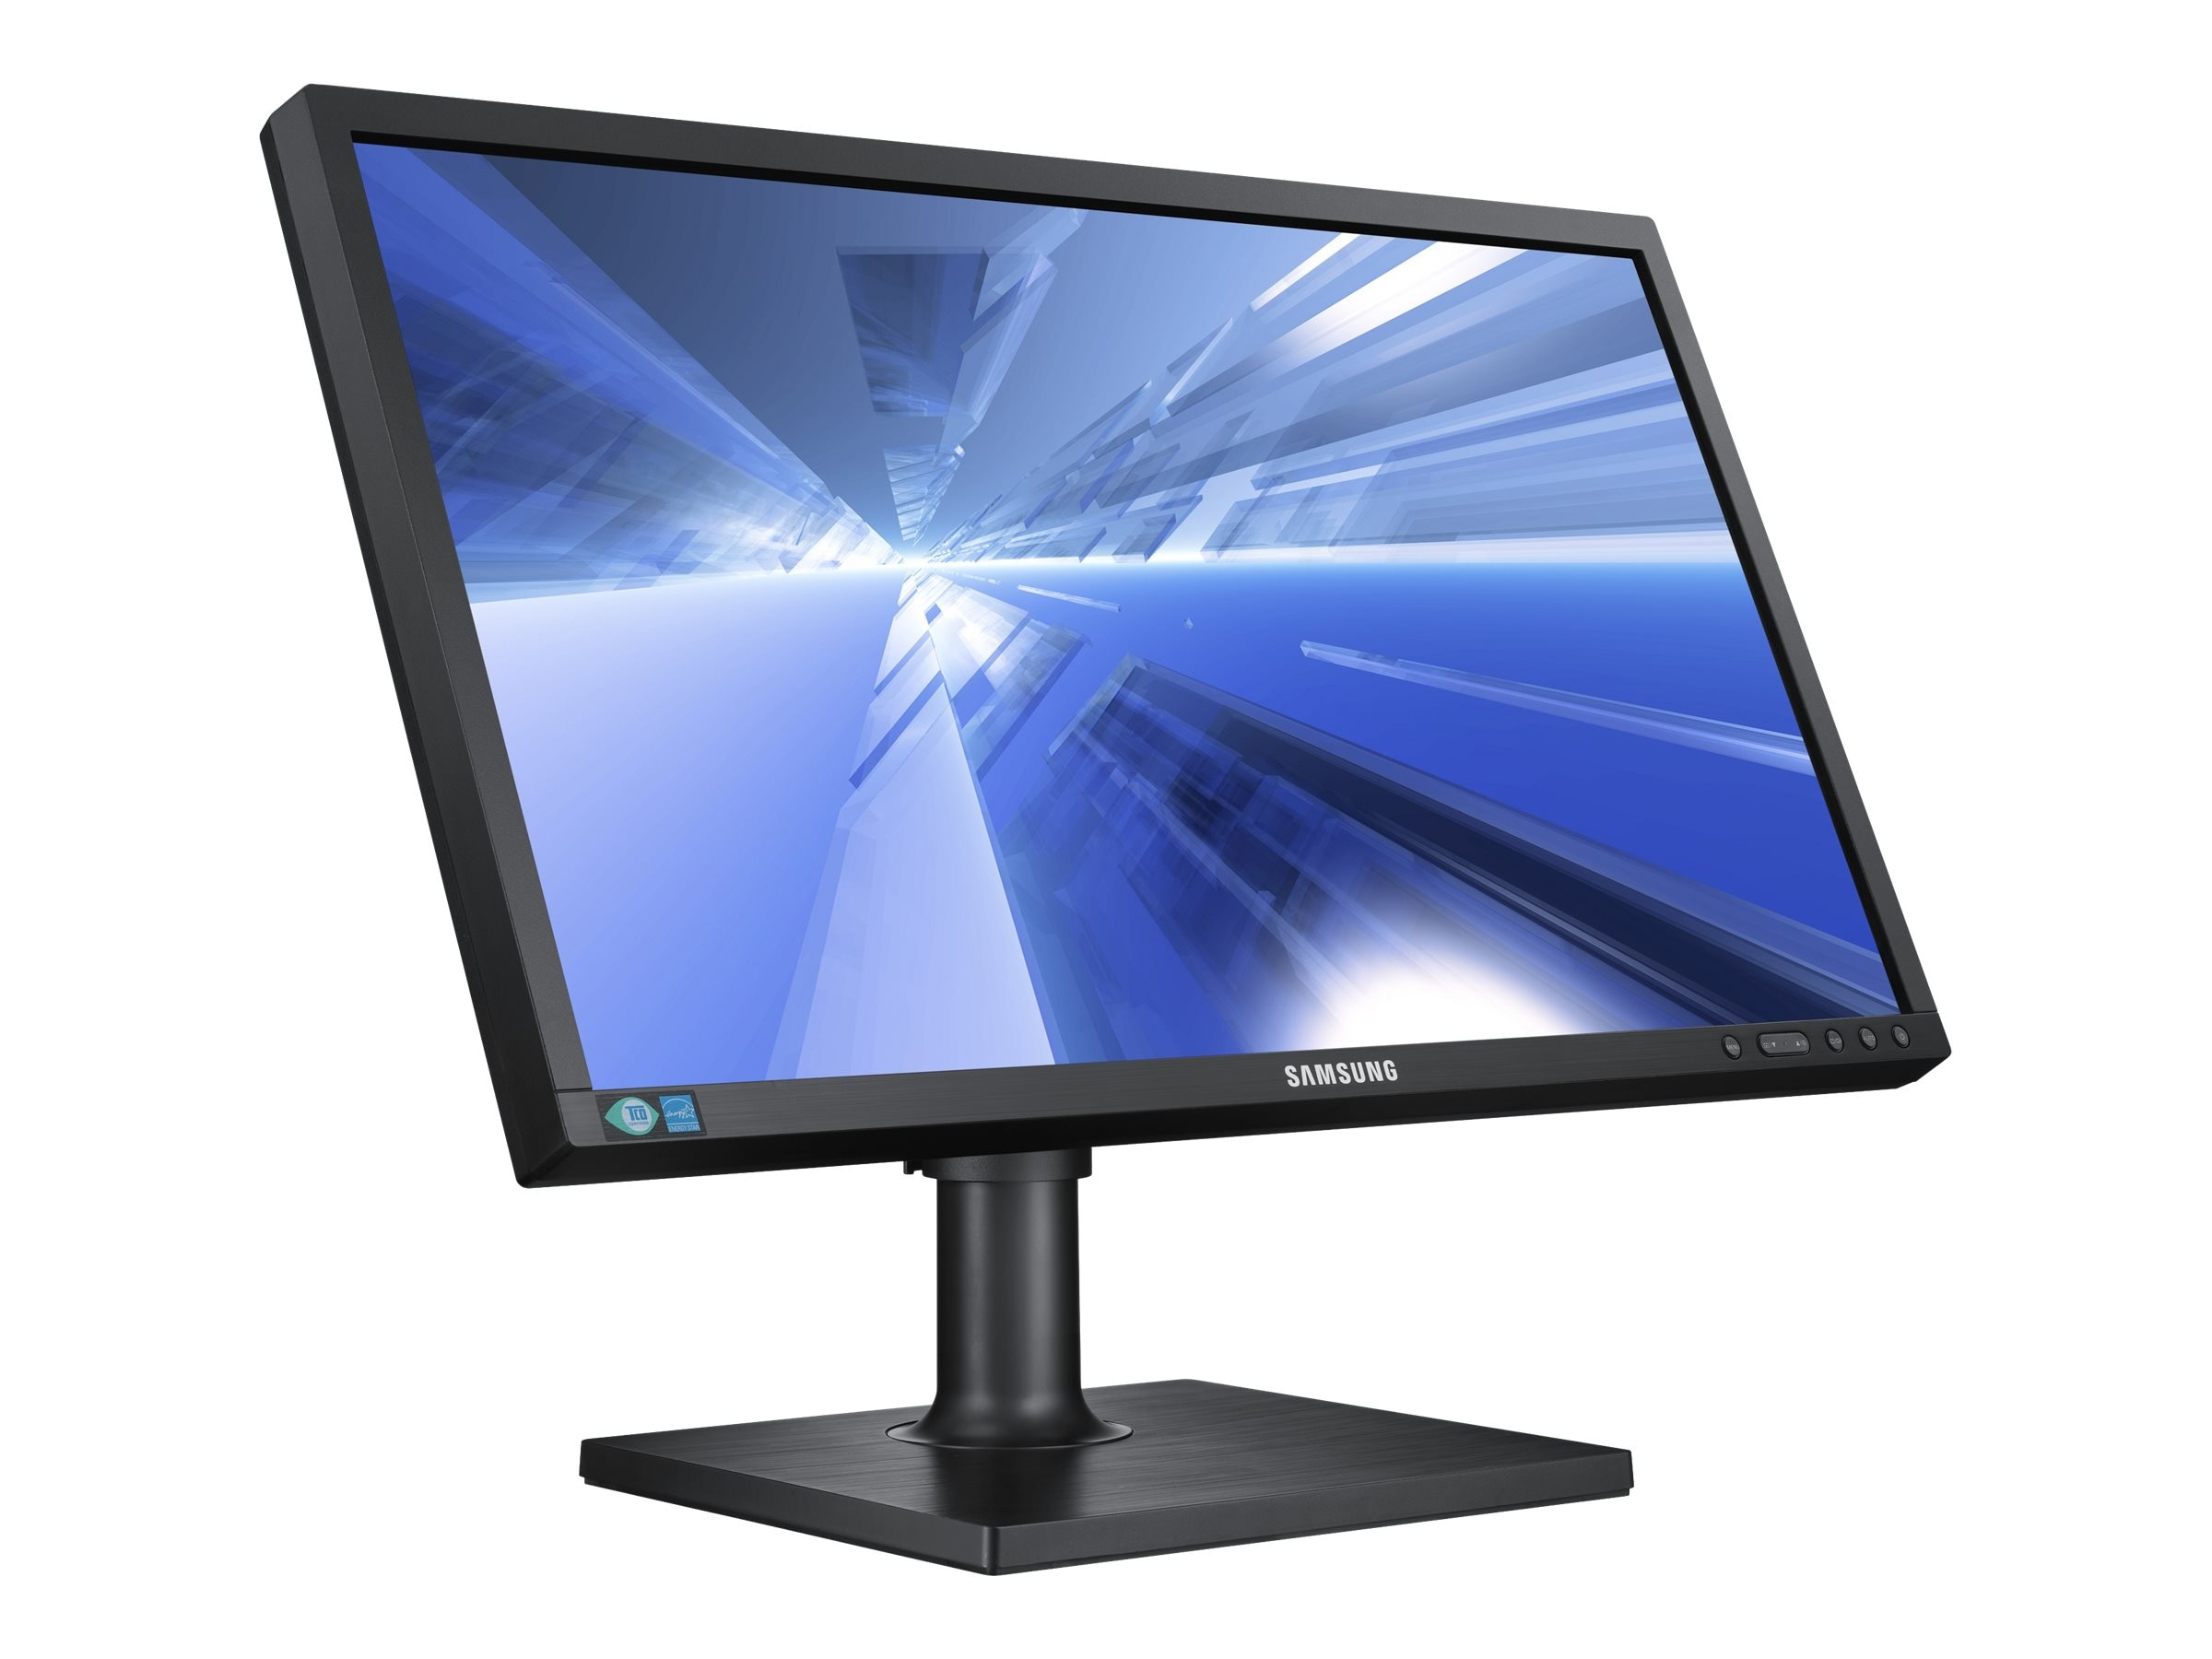 Samsung 27 SE650 Series Full HD LED-LCD Monitor, Black, S27E650D